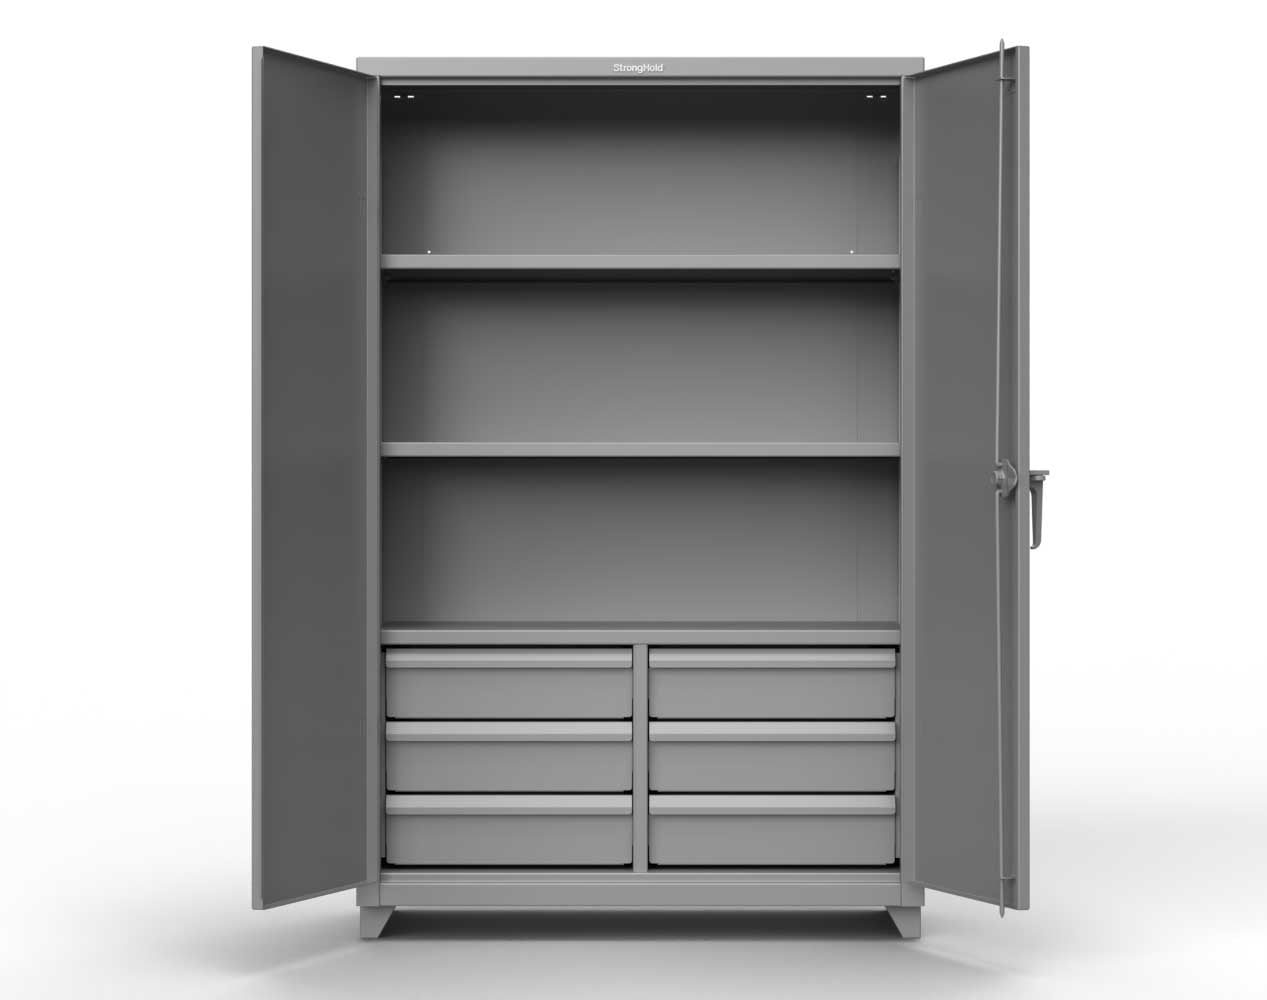 Extra Heavy Duty 14 GA Cabinet with 6 Half-Width Drawers, 3 Shelves – 48 In. W x 24 In. D x 75 In. H